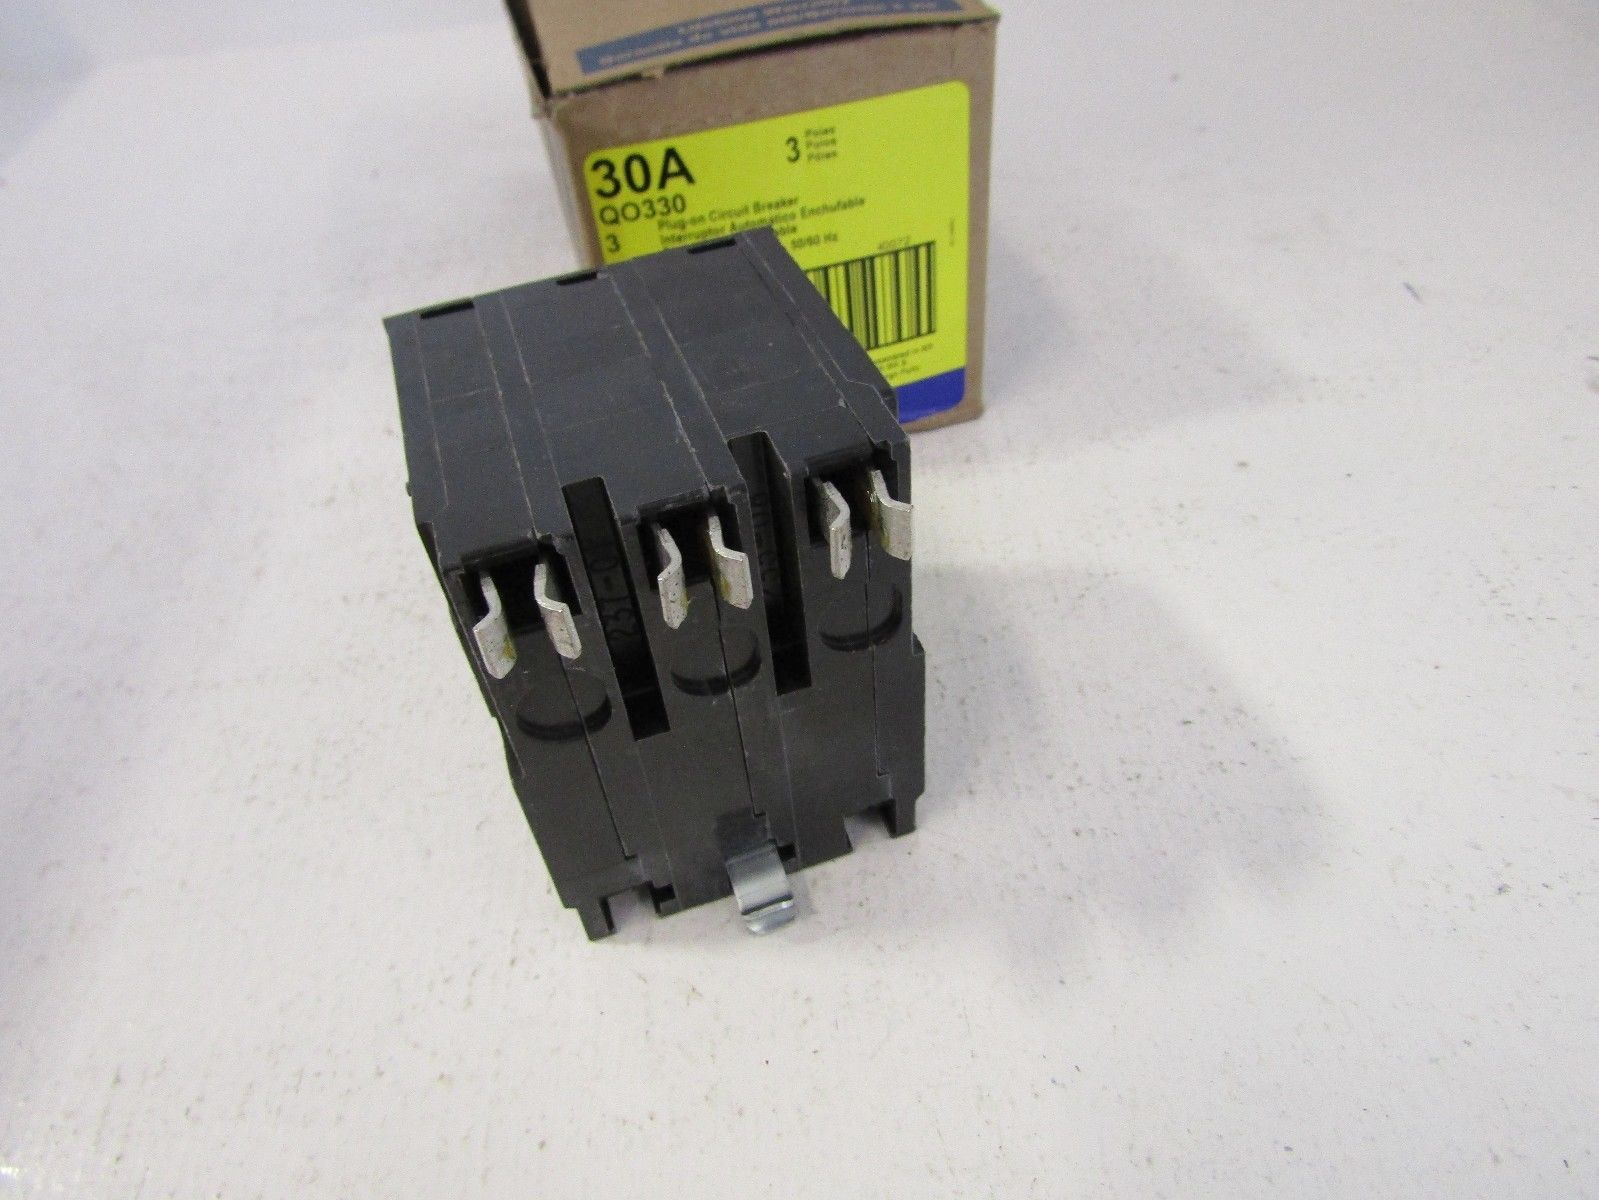 Square D Breakers 30 Amp Std Circuit Breaker Hom130cp By Schneider Electric New Qo Qo330 3 Pole